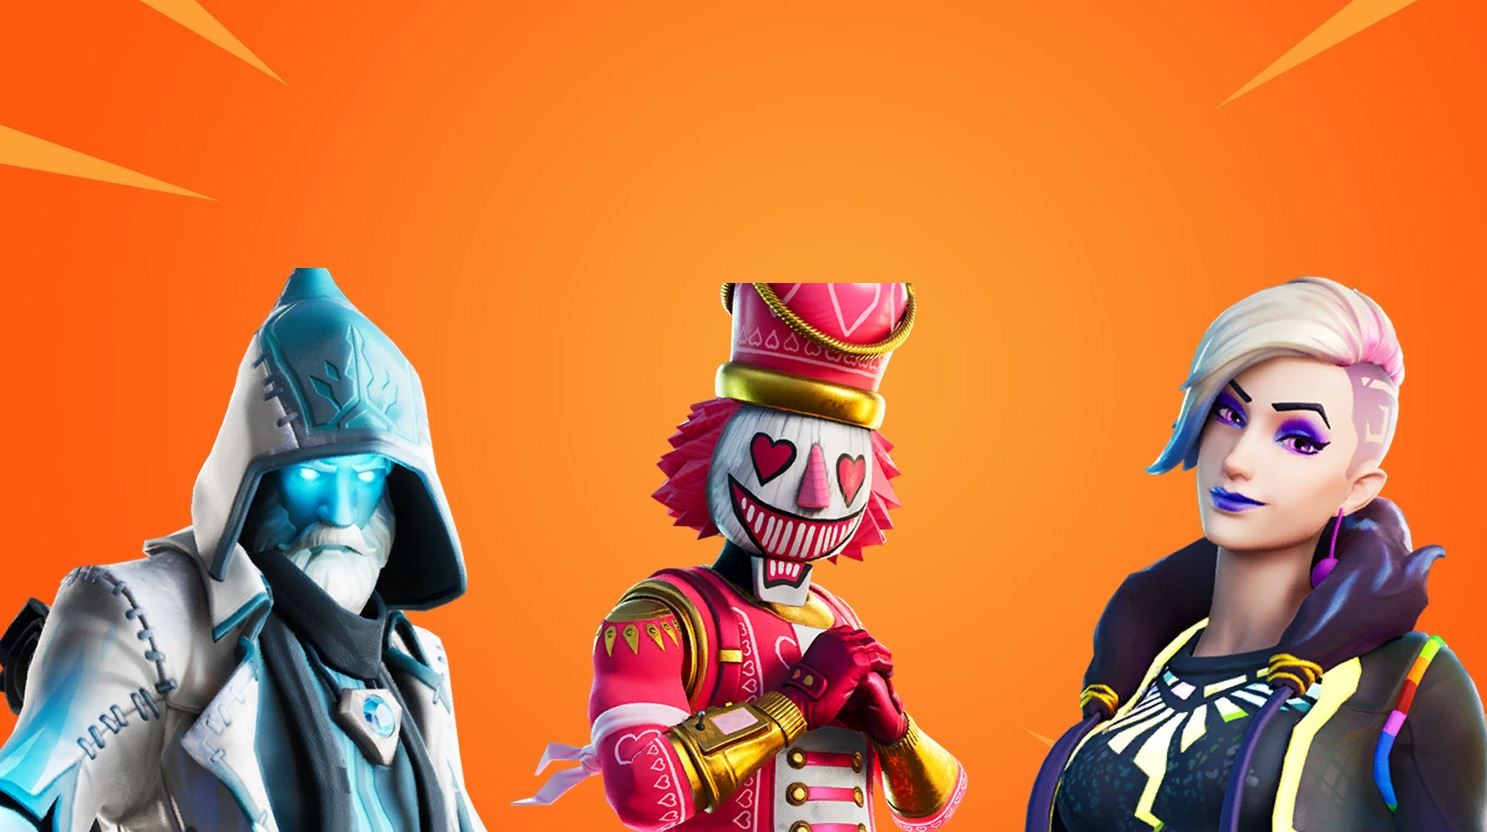 Fortnite will get an annual battle pass with exclusive skins